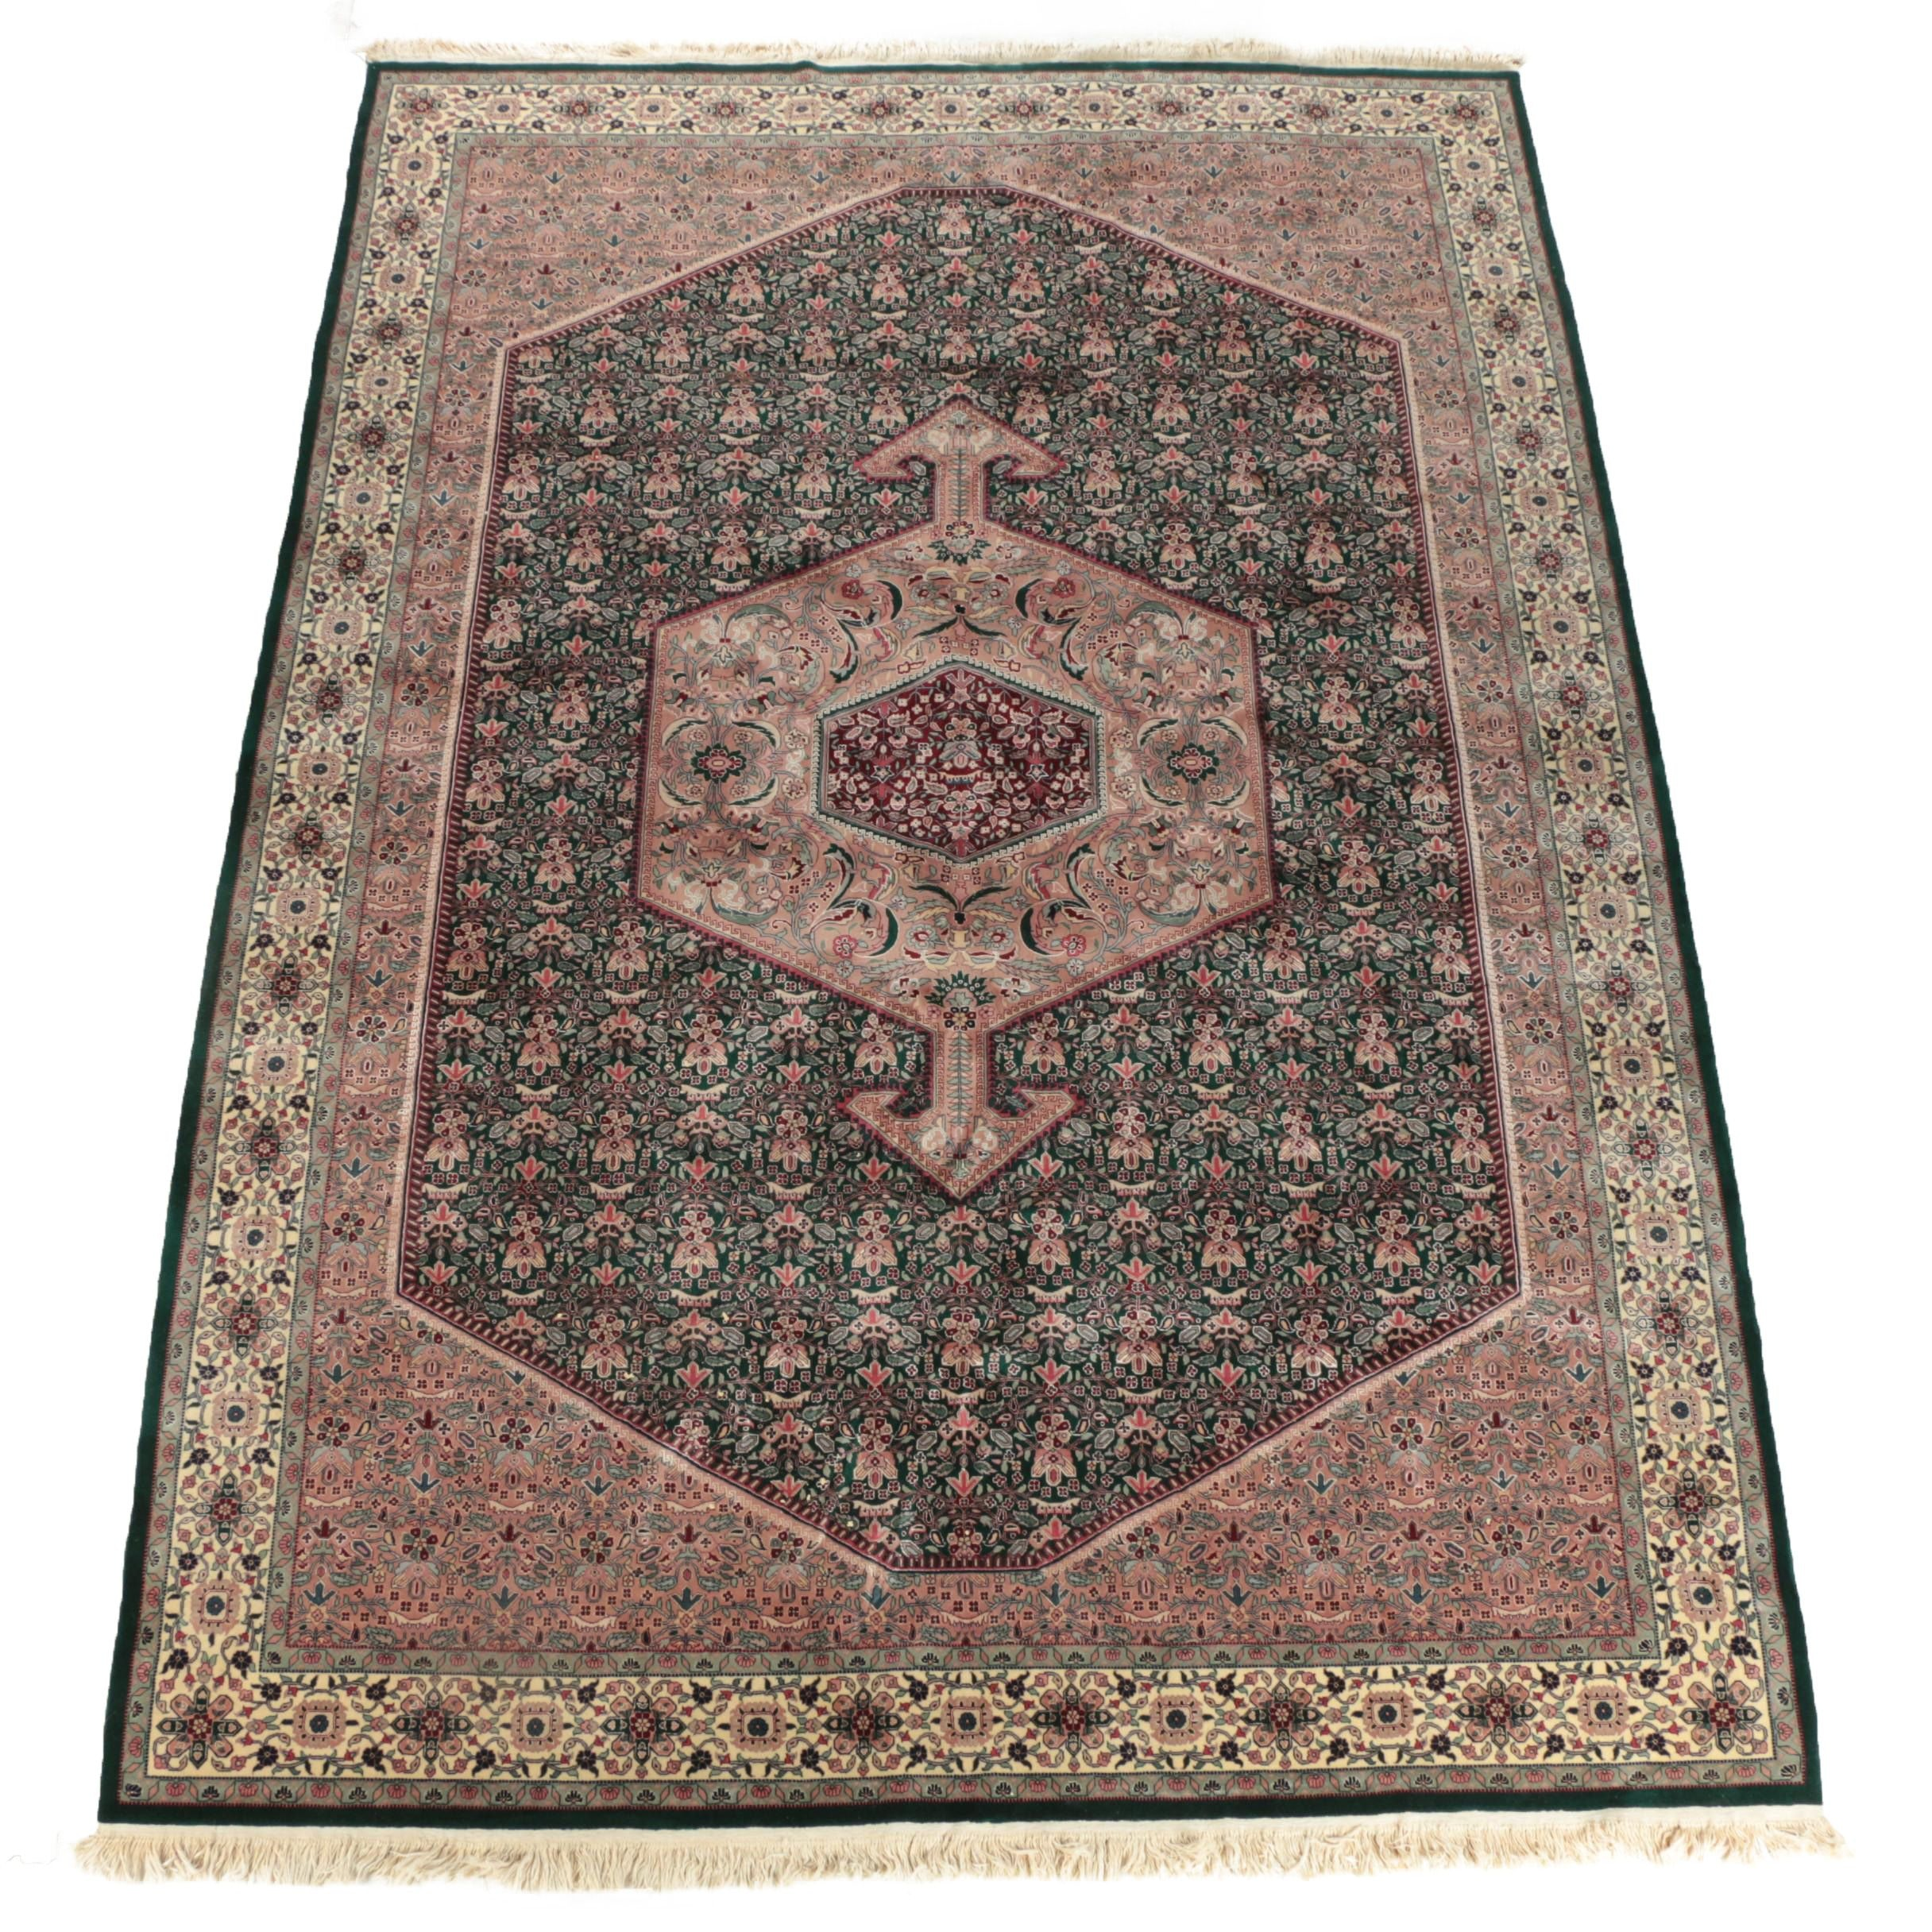 Hand-Knotted Sino-Persian Wool Room Sized Rug